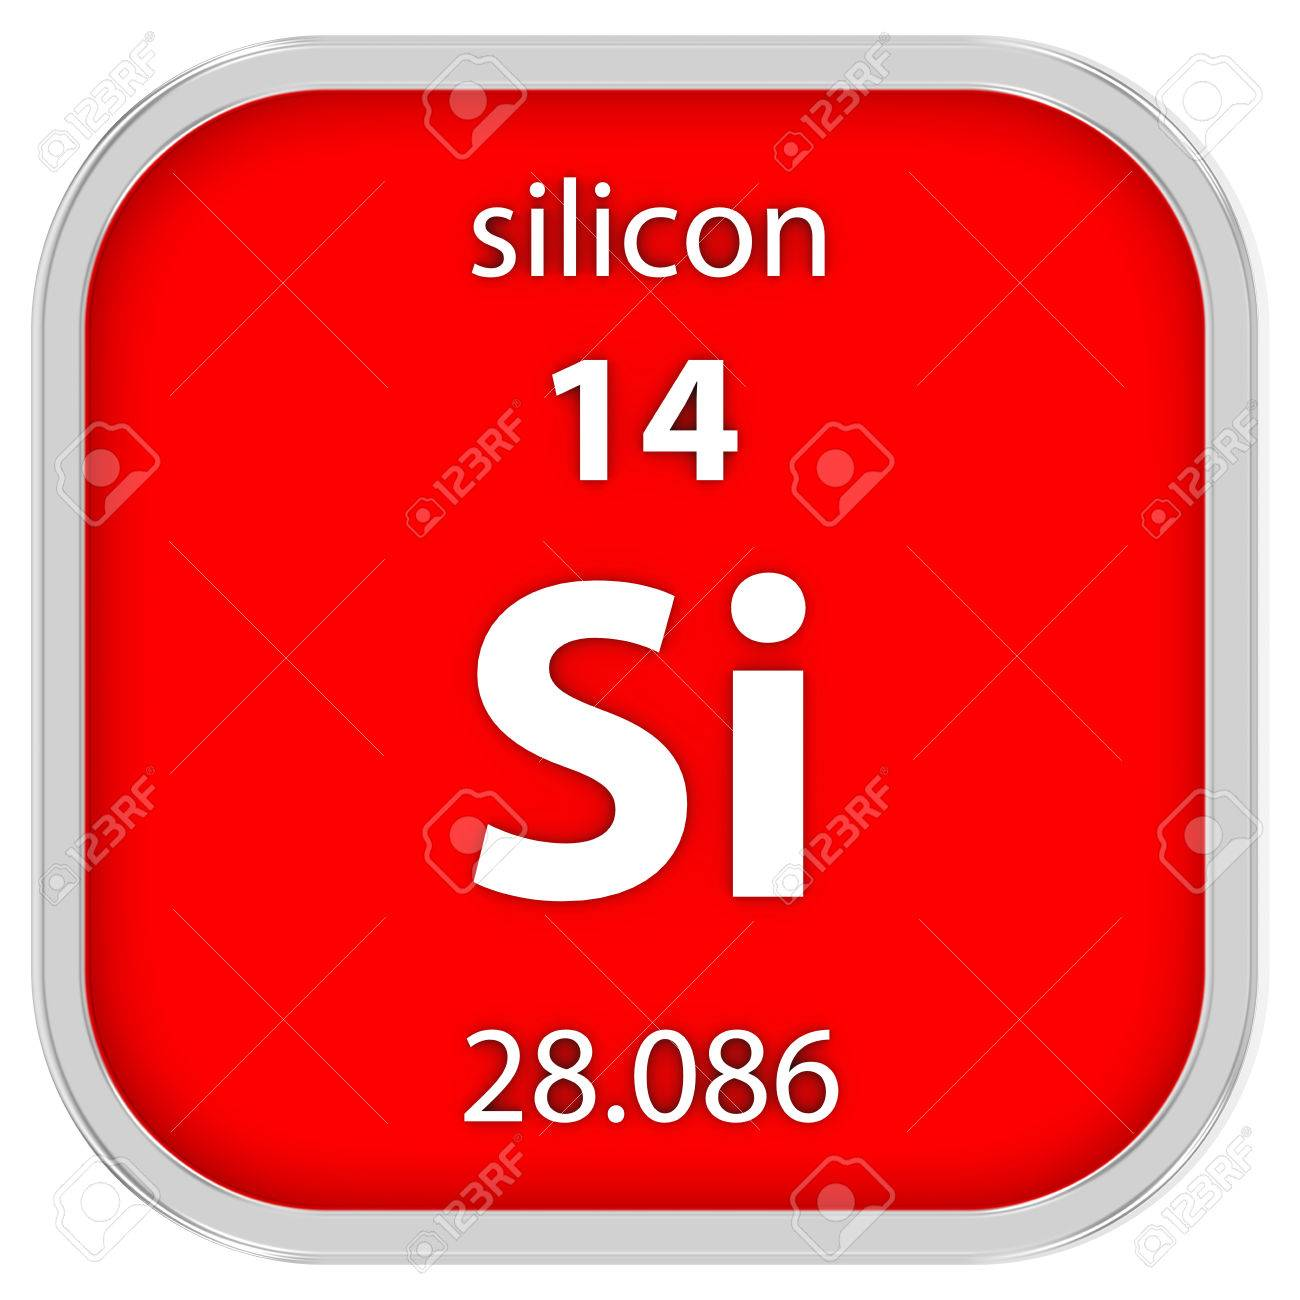 Silicon material on the periodic table part of a series stock silicon material on the periodic table part of a series stock photo 41158685 biocorpaavc Image collections